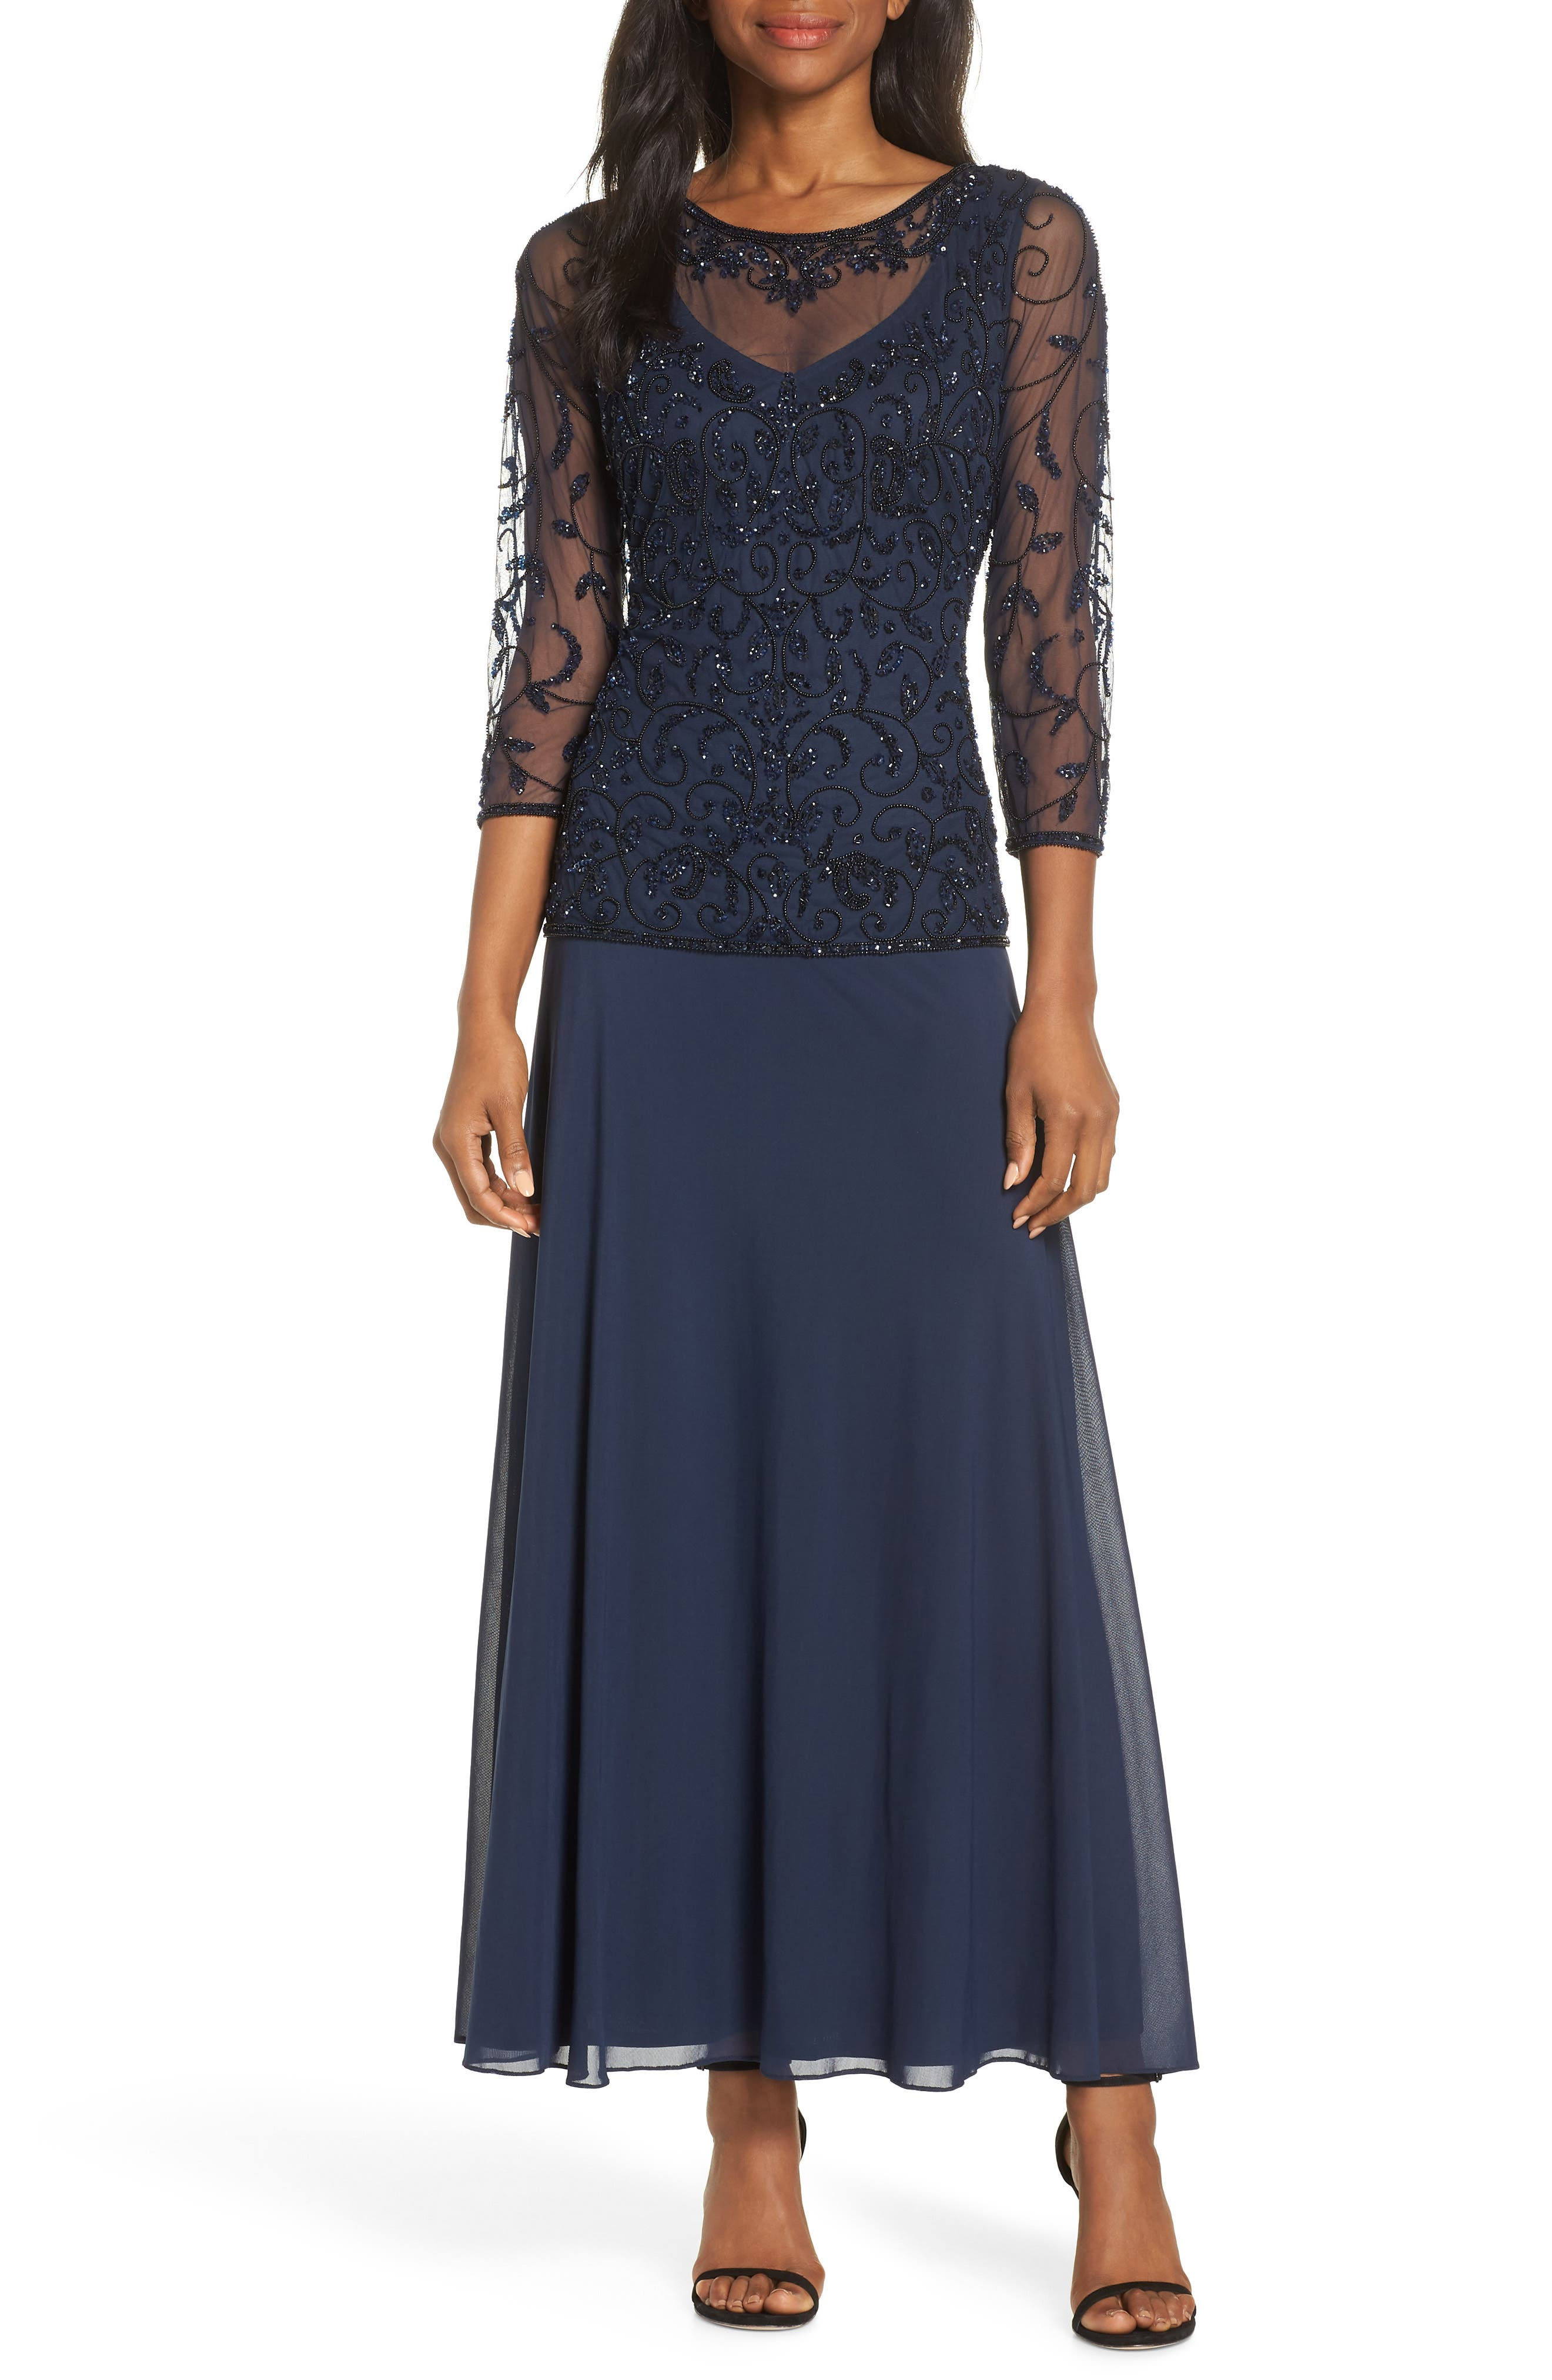 PISARRO NIGHTS, Beaded Mesh Mock Two-Piece Gown, Main thumbnail 1, color, NAVY/ BLACK